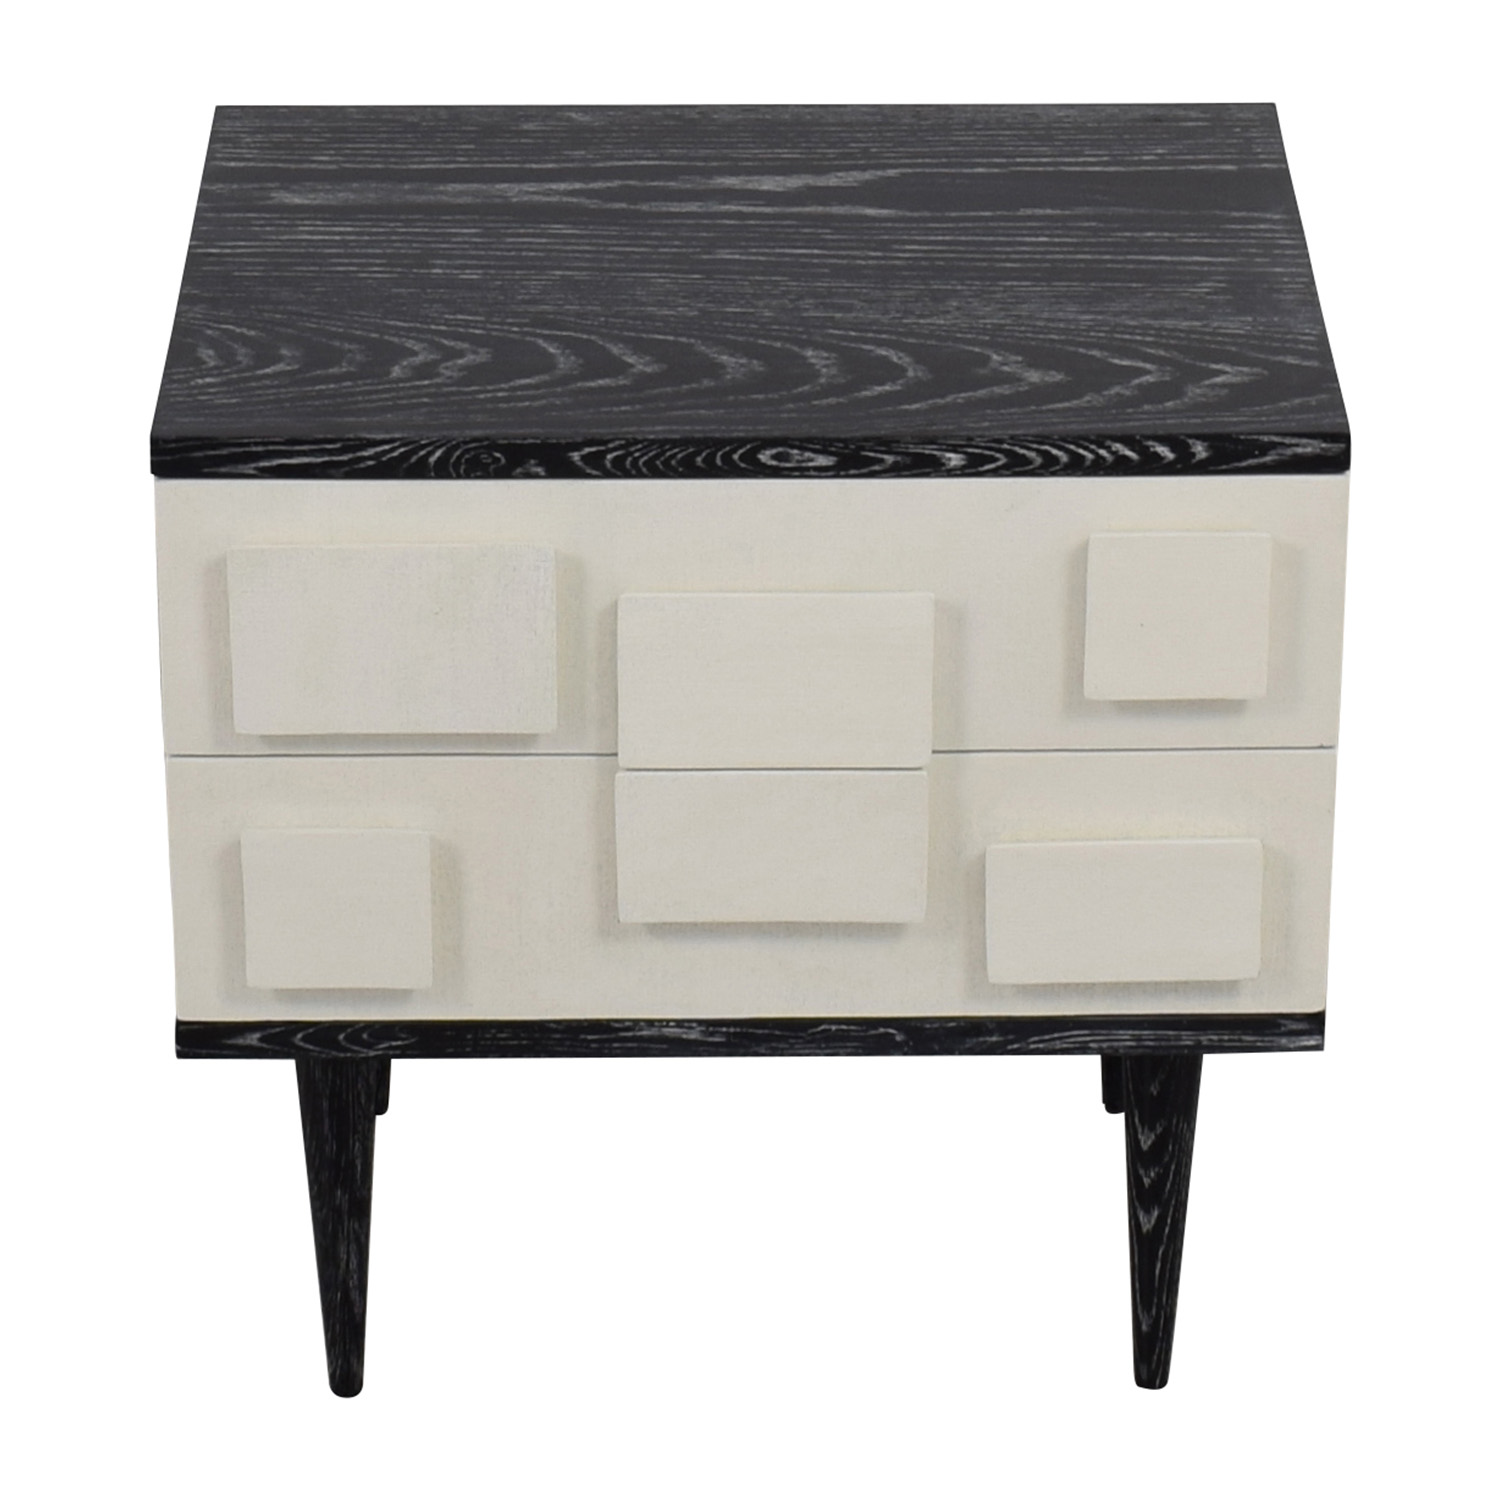 Bungalow 5 Ponti Two-Drawer Side Table Bungalow 5